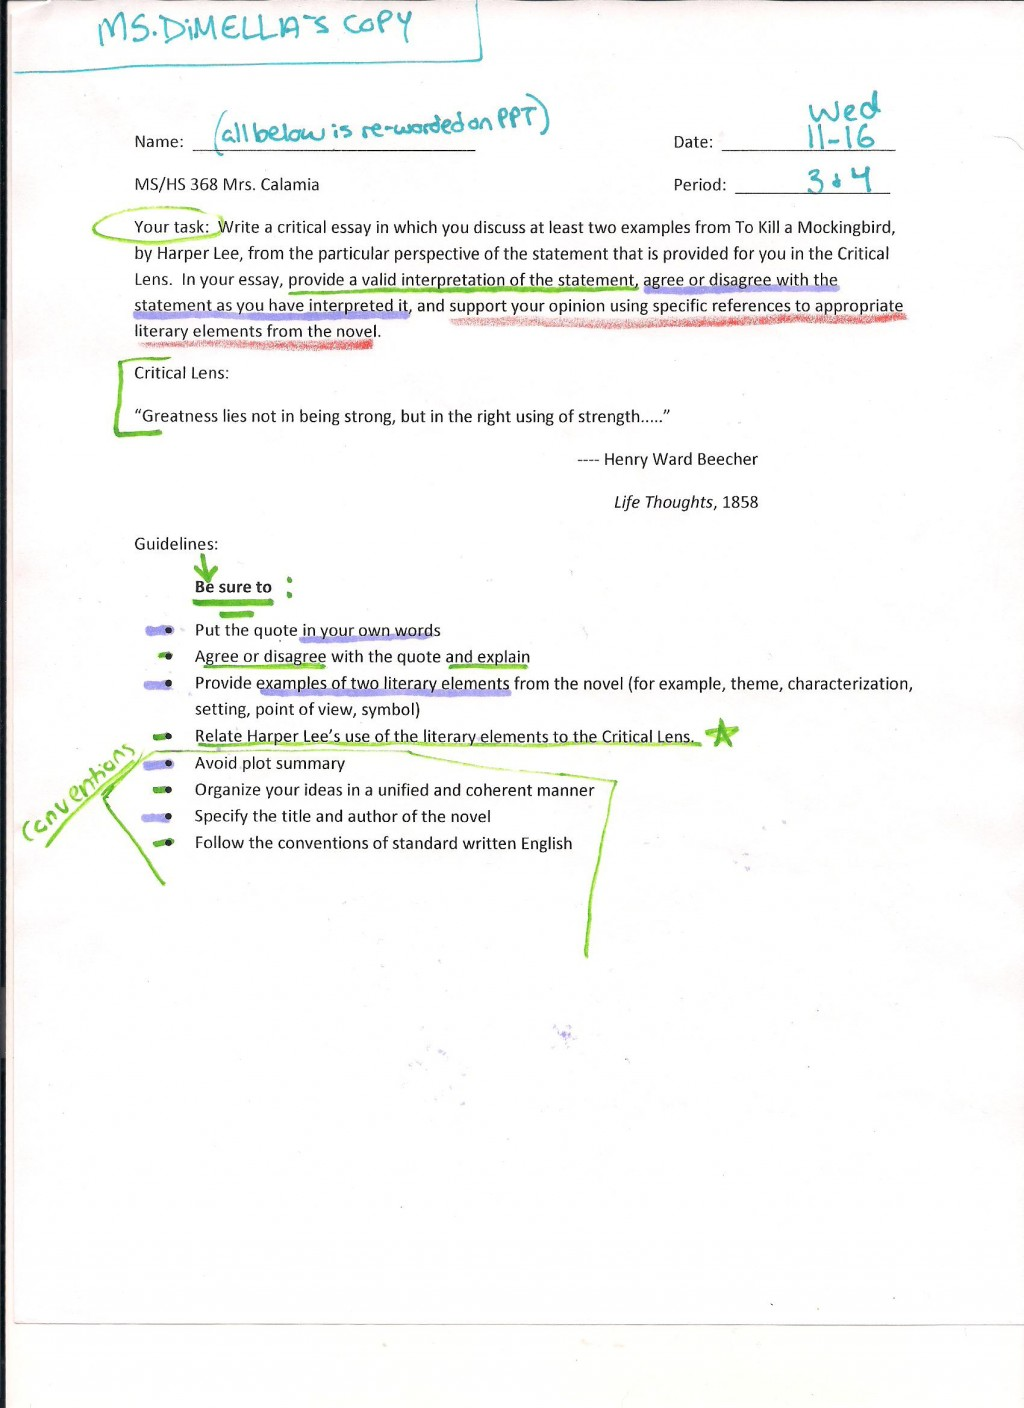 022 Critical Lens Essay  Hs Planning Midterm Best Sample Template Example English RegentsLarge